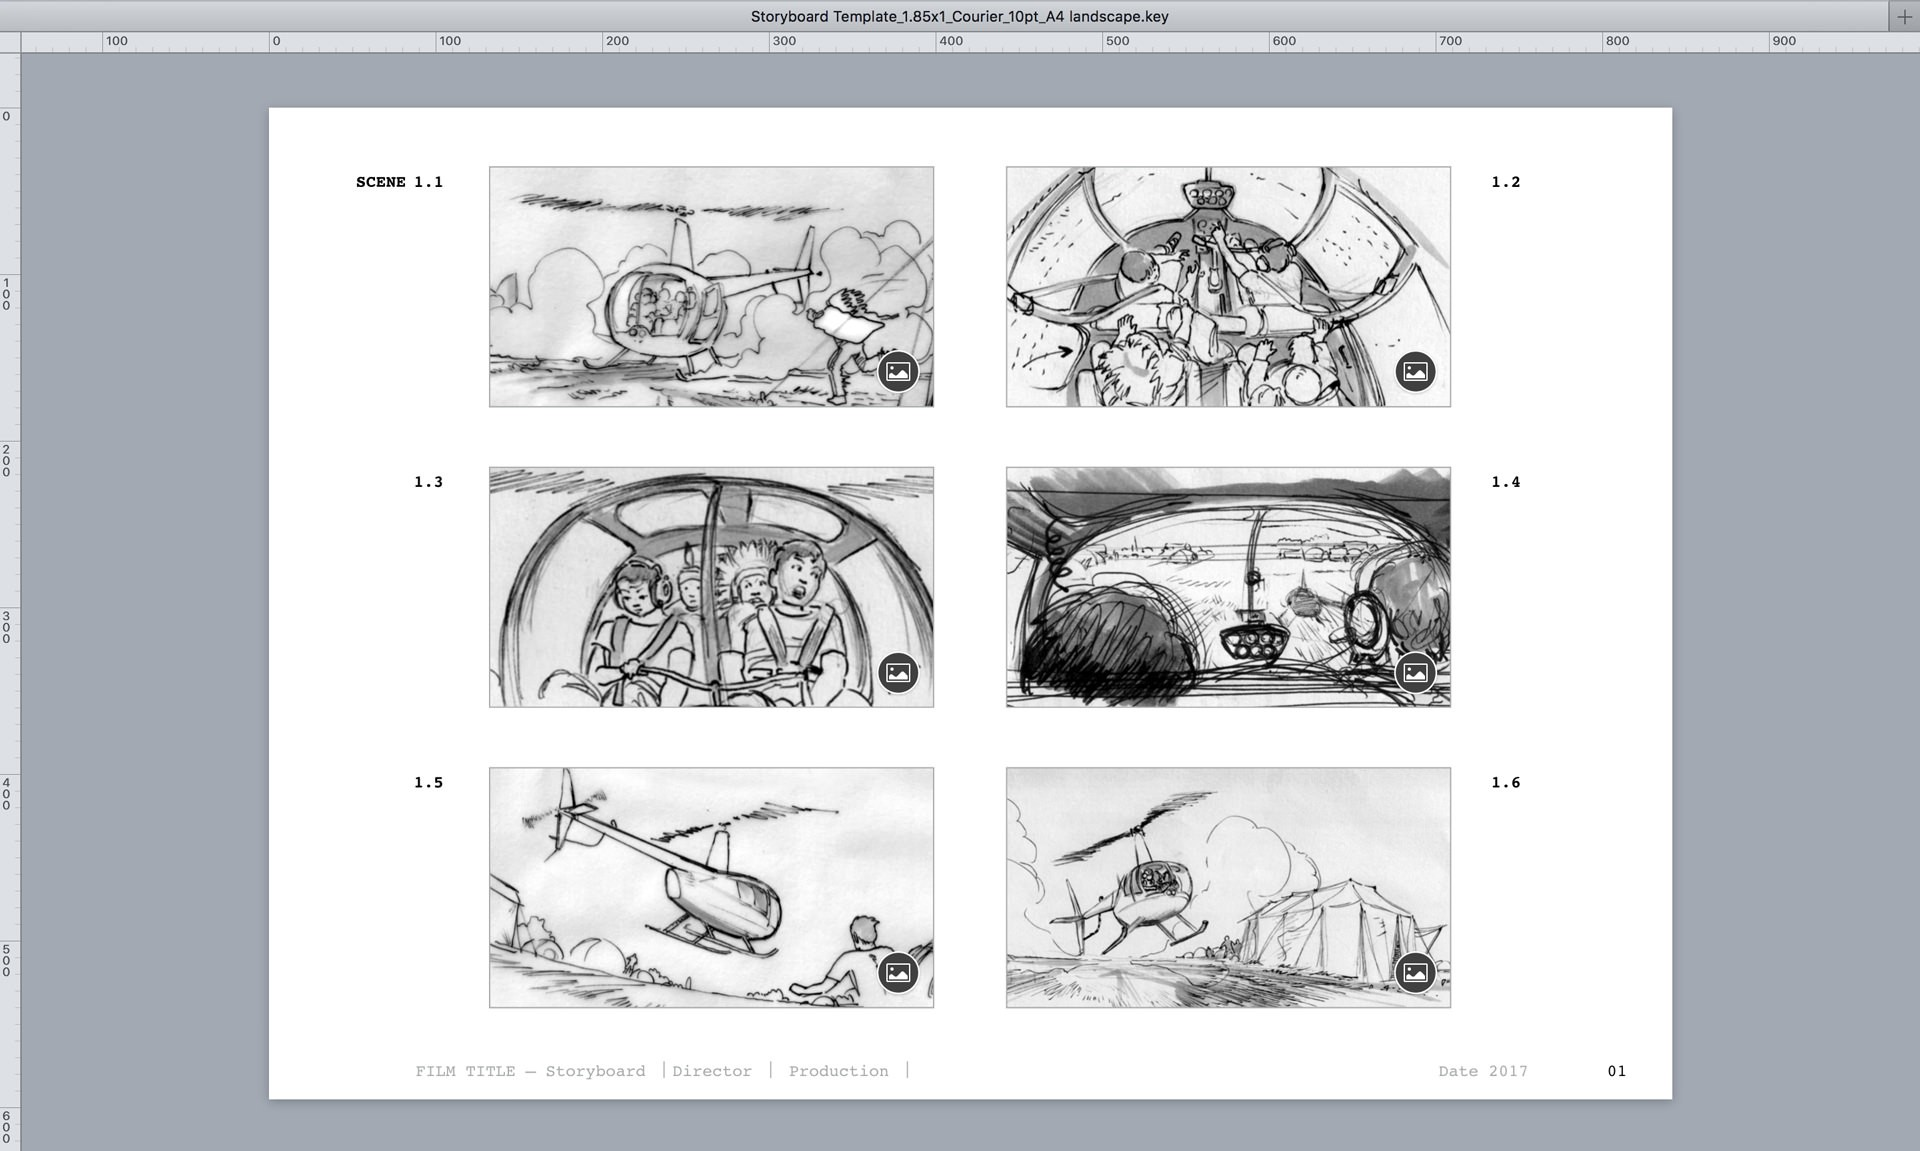 1851 Keynote Theme For Storyboards Sample In Use